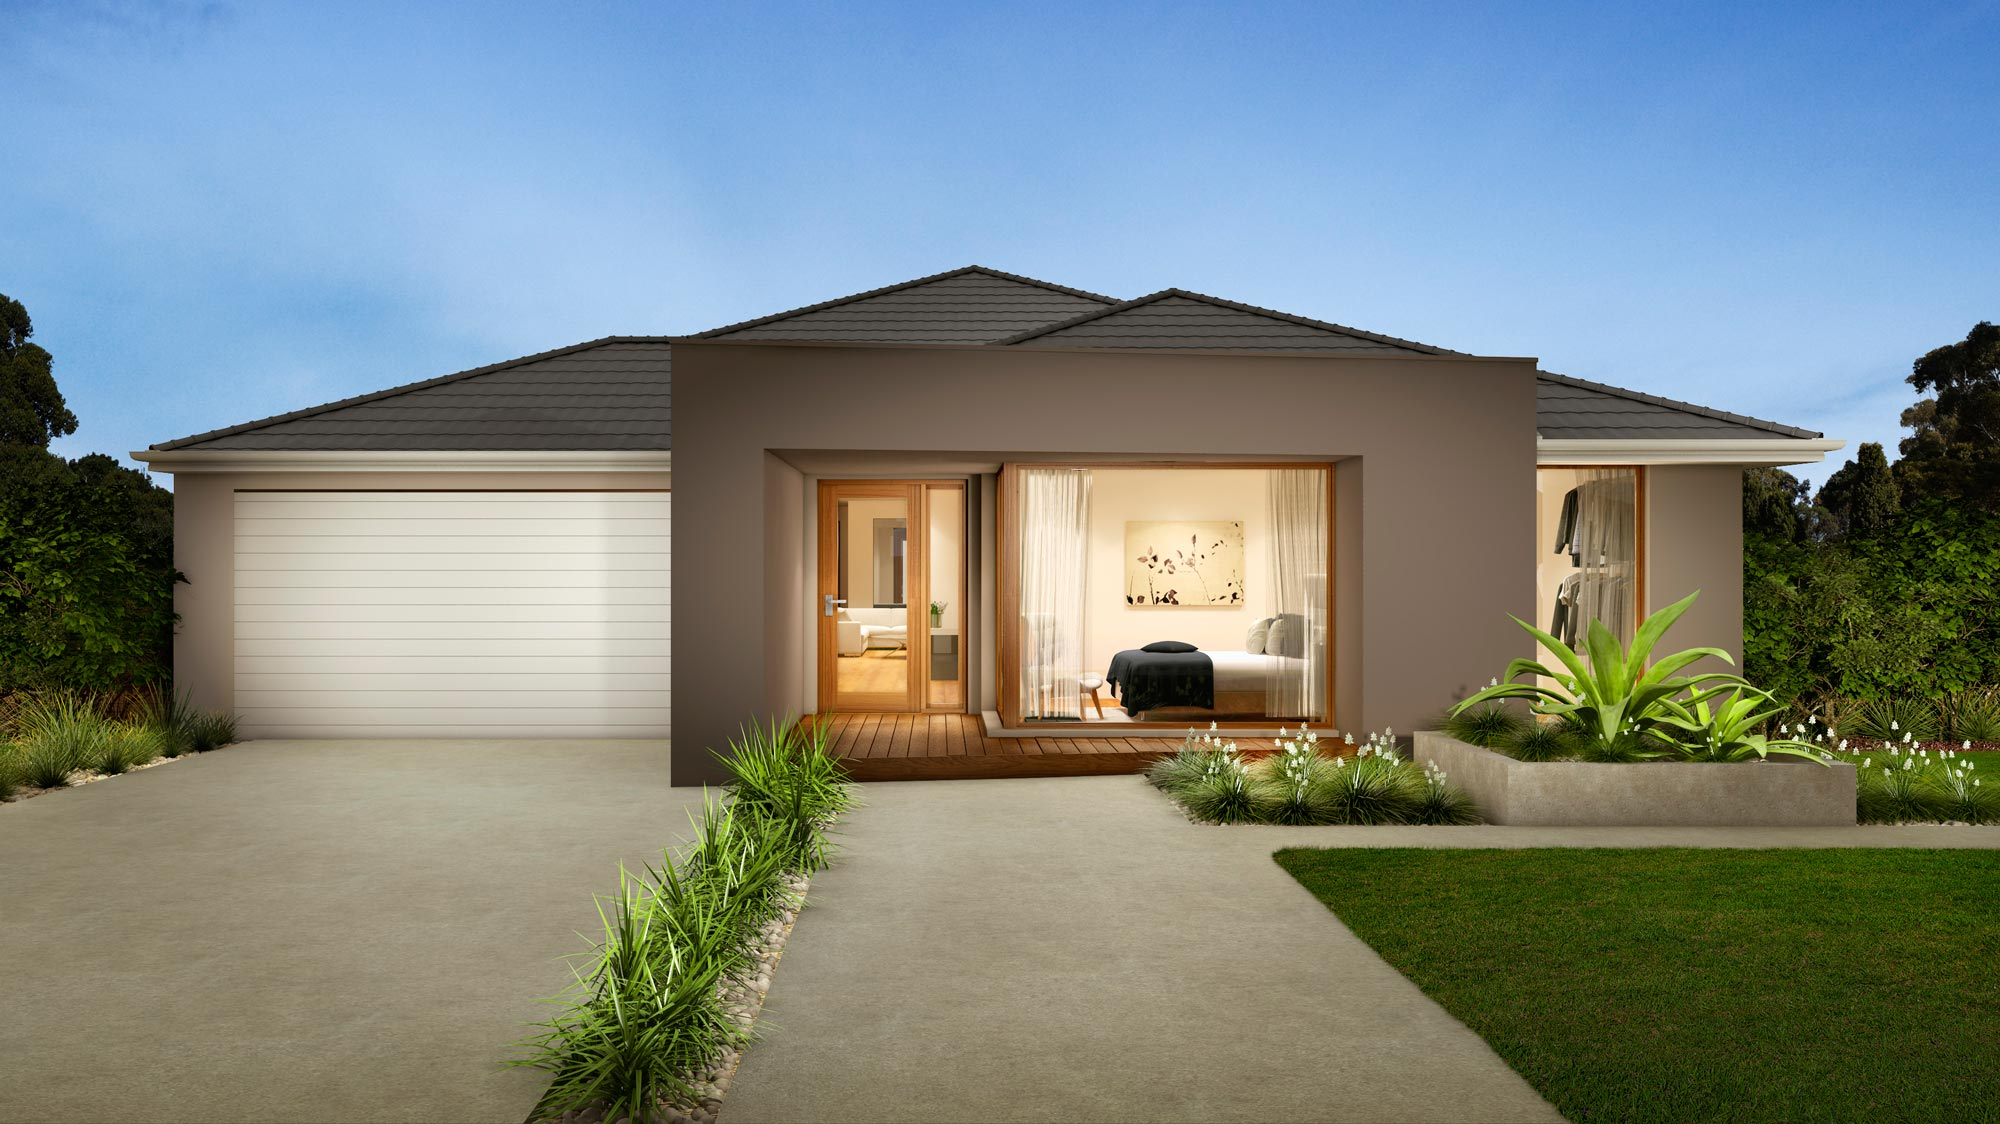 Q3 for Modern house plans under 200k to build